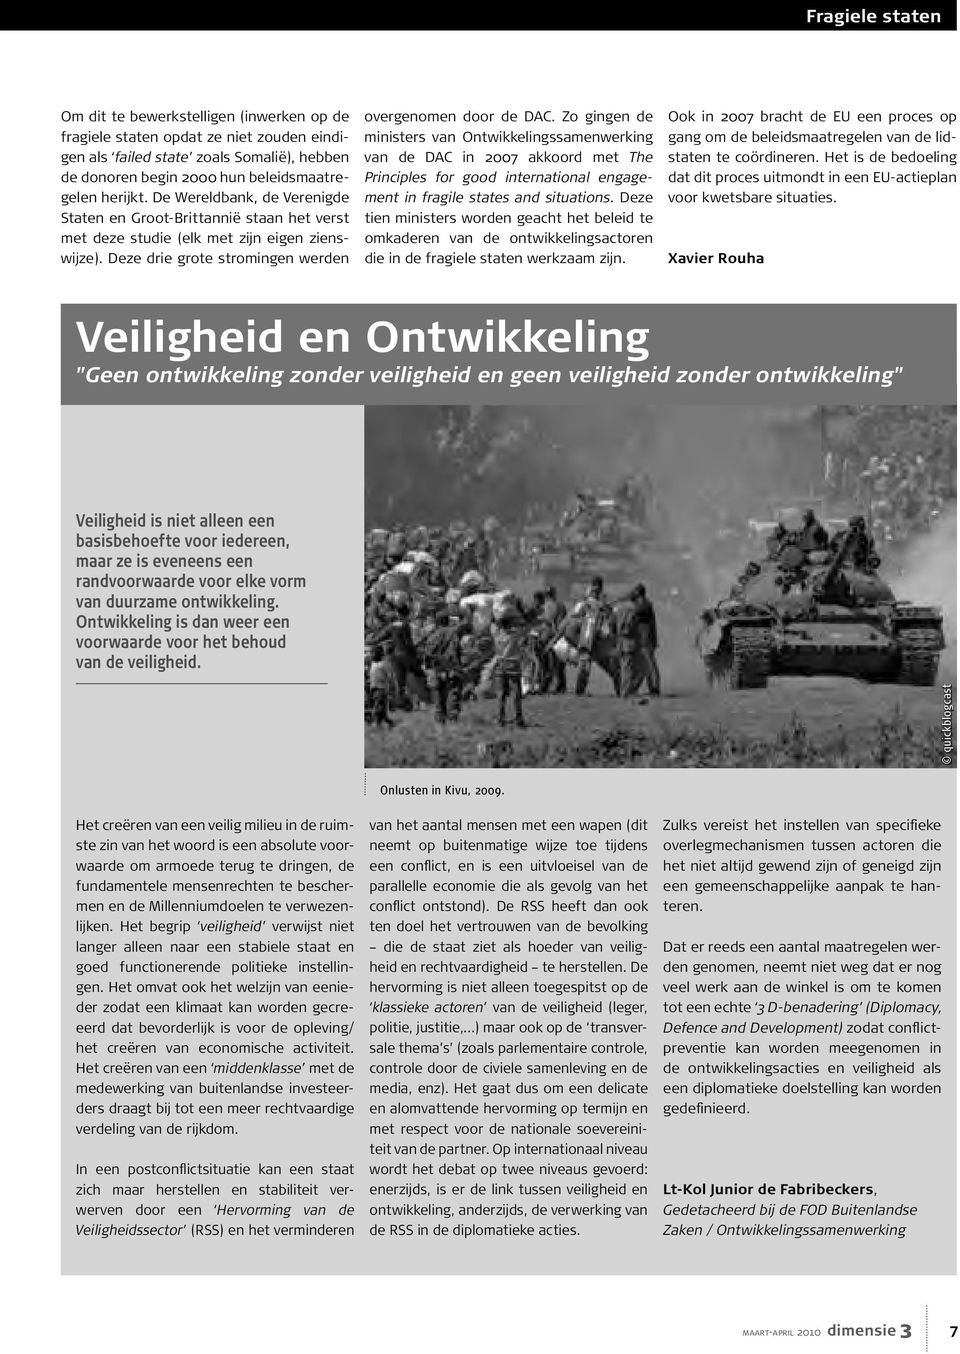 Zo gingen de ministers van Ontwikkelingssamenwerking van de DAC in 2007 akkoord met The Principles for good international engagement in fragile states and situations.